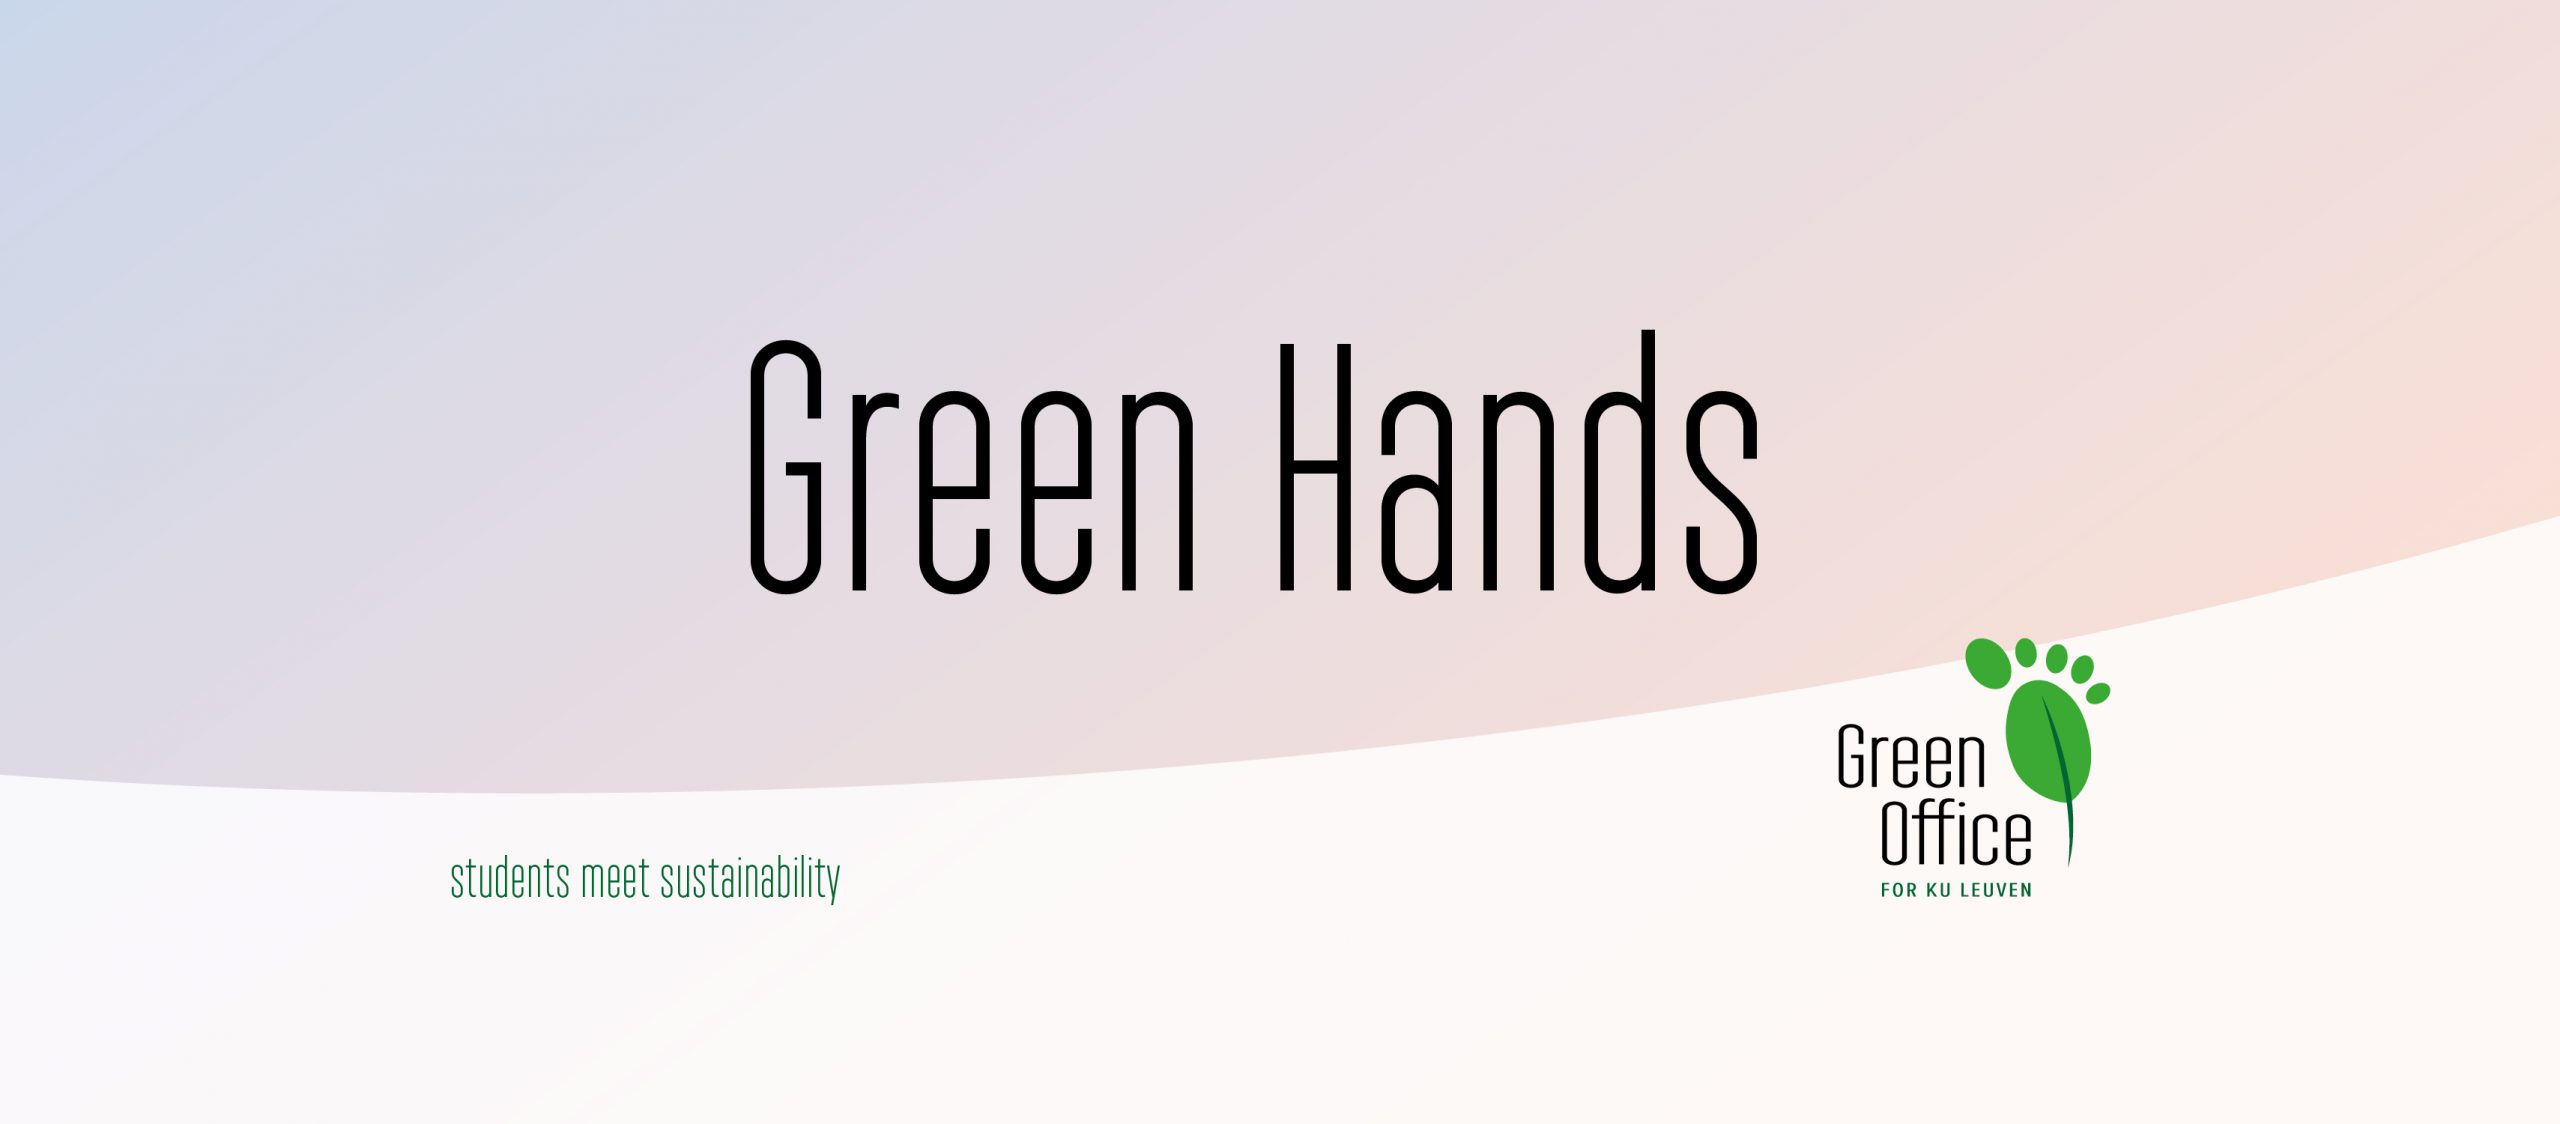 Want to give a hand at the Green Office?